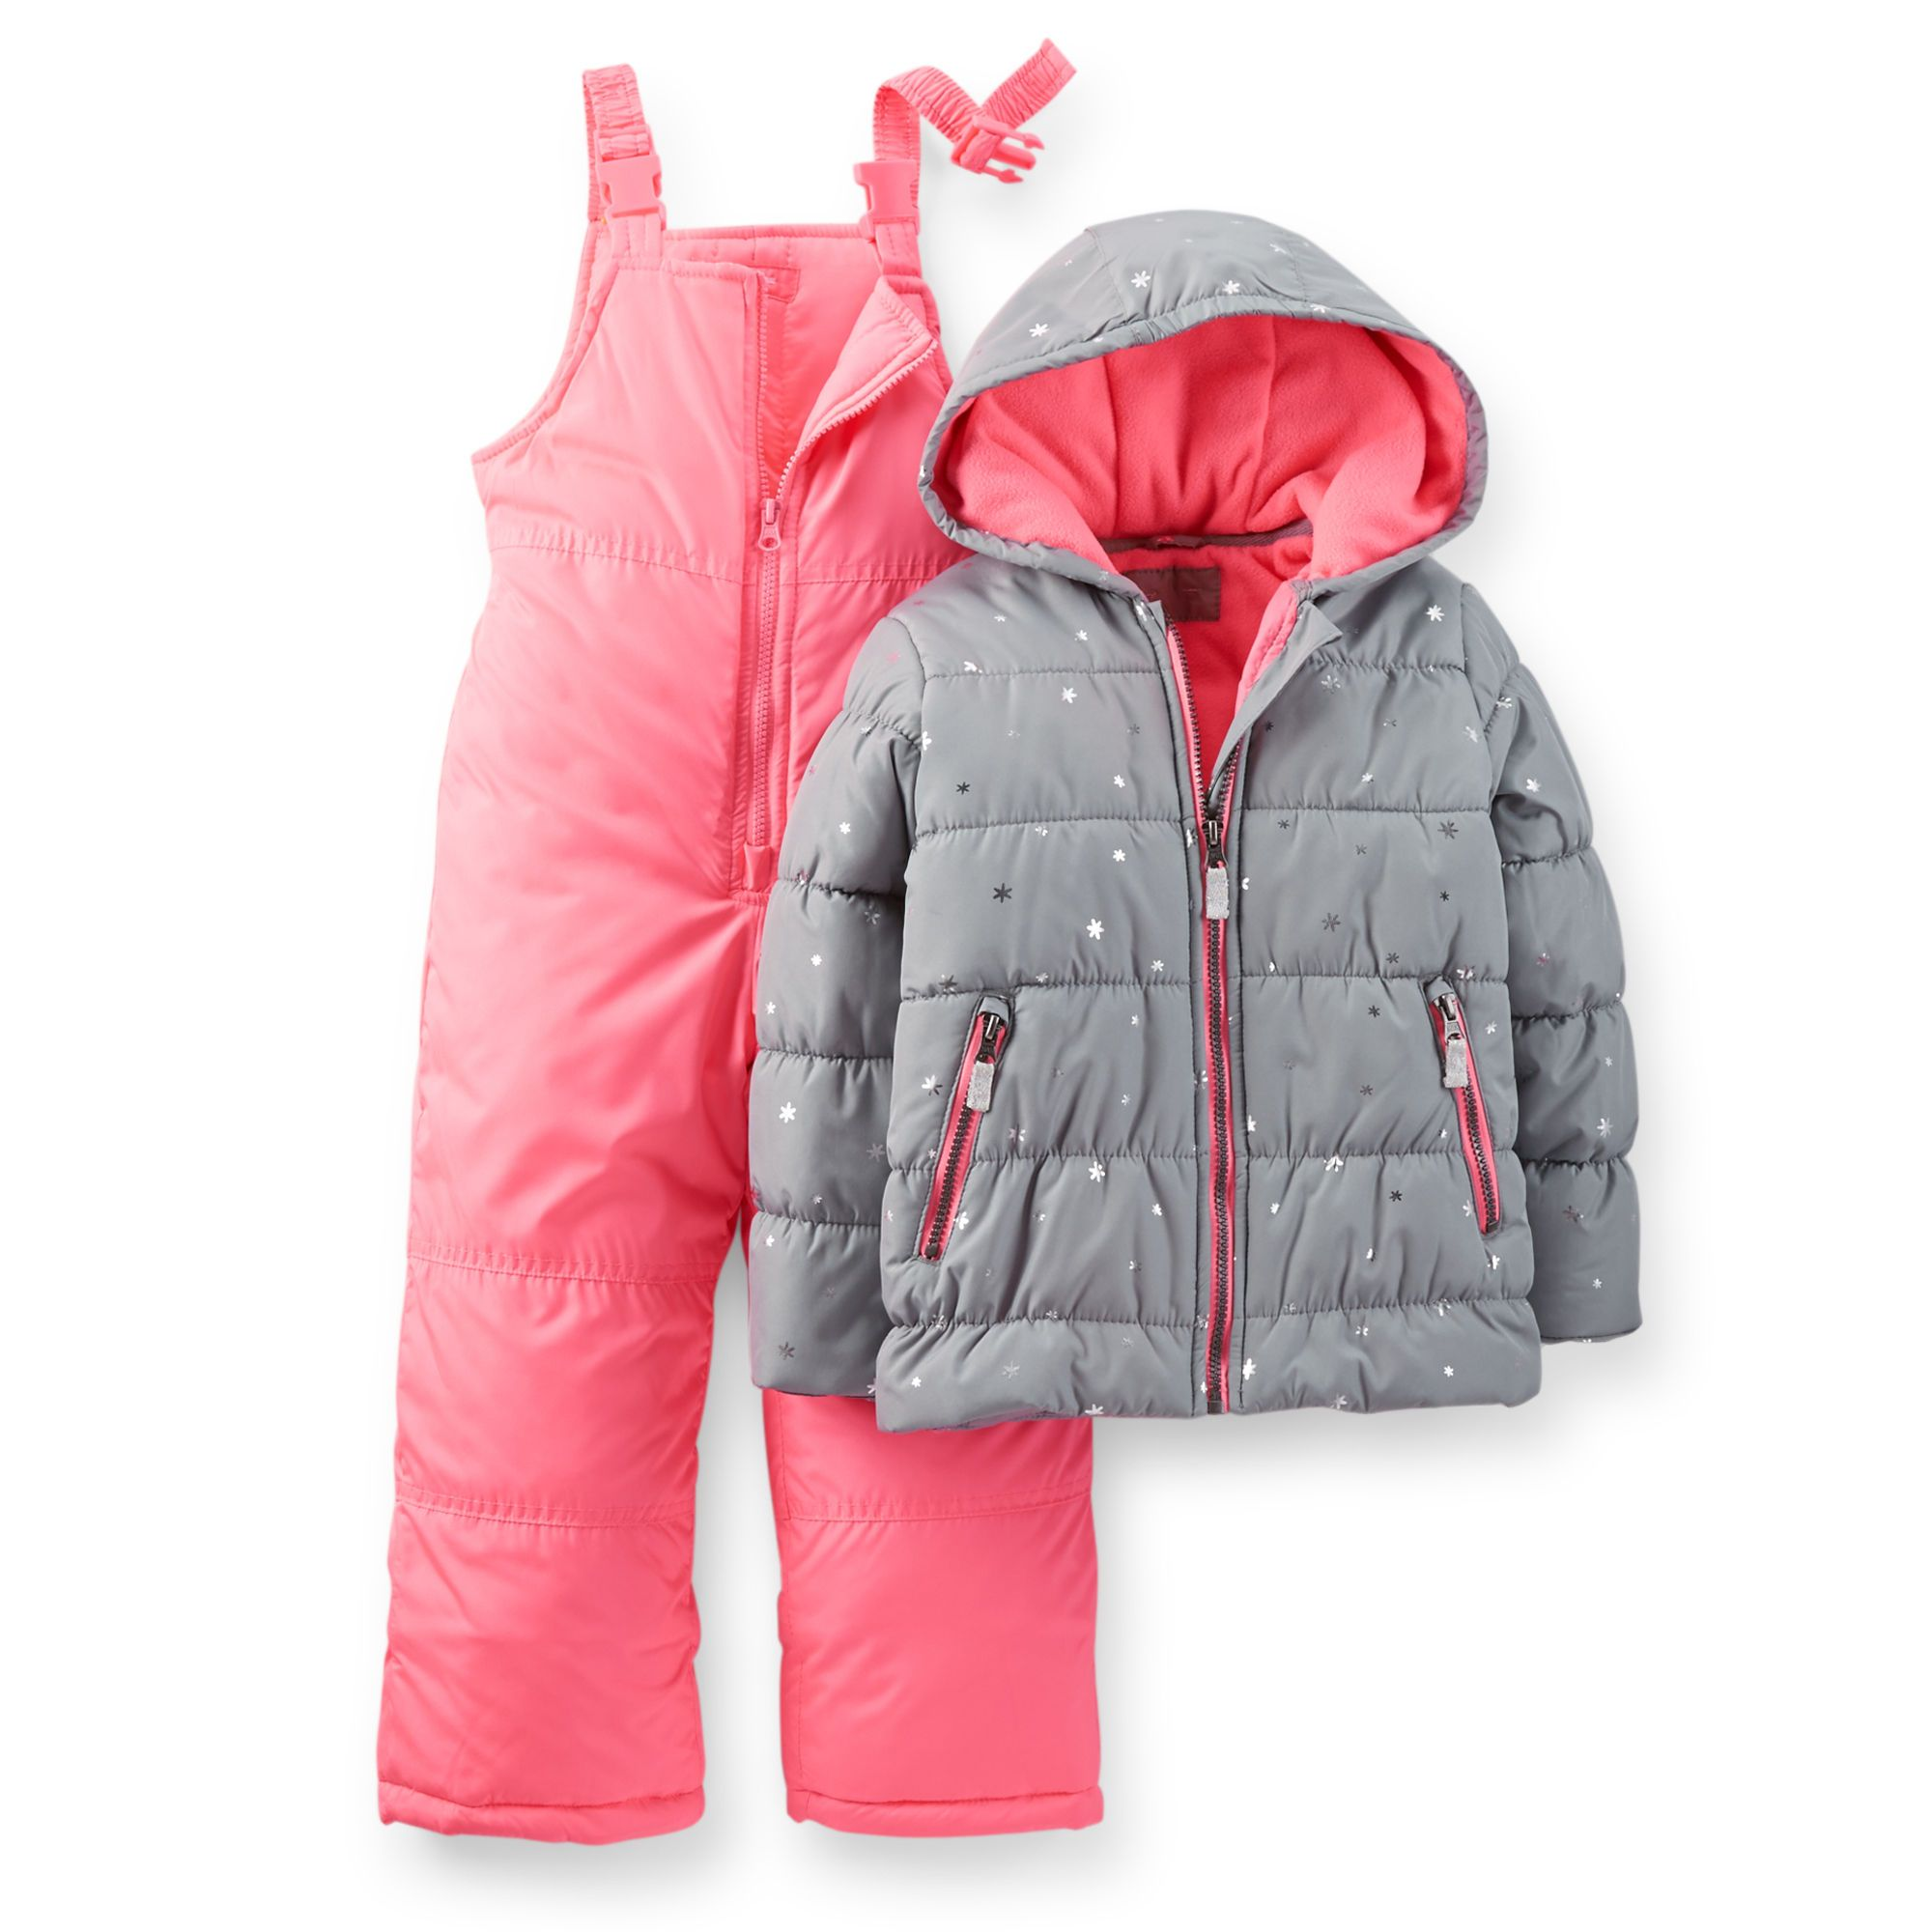 Snow suit for Isabelle not necessarily this one though it is cute